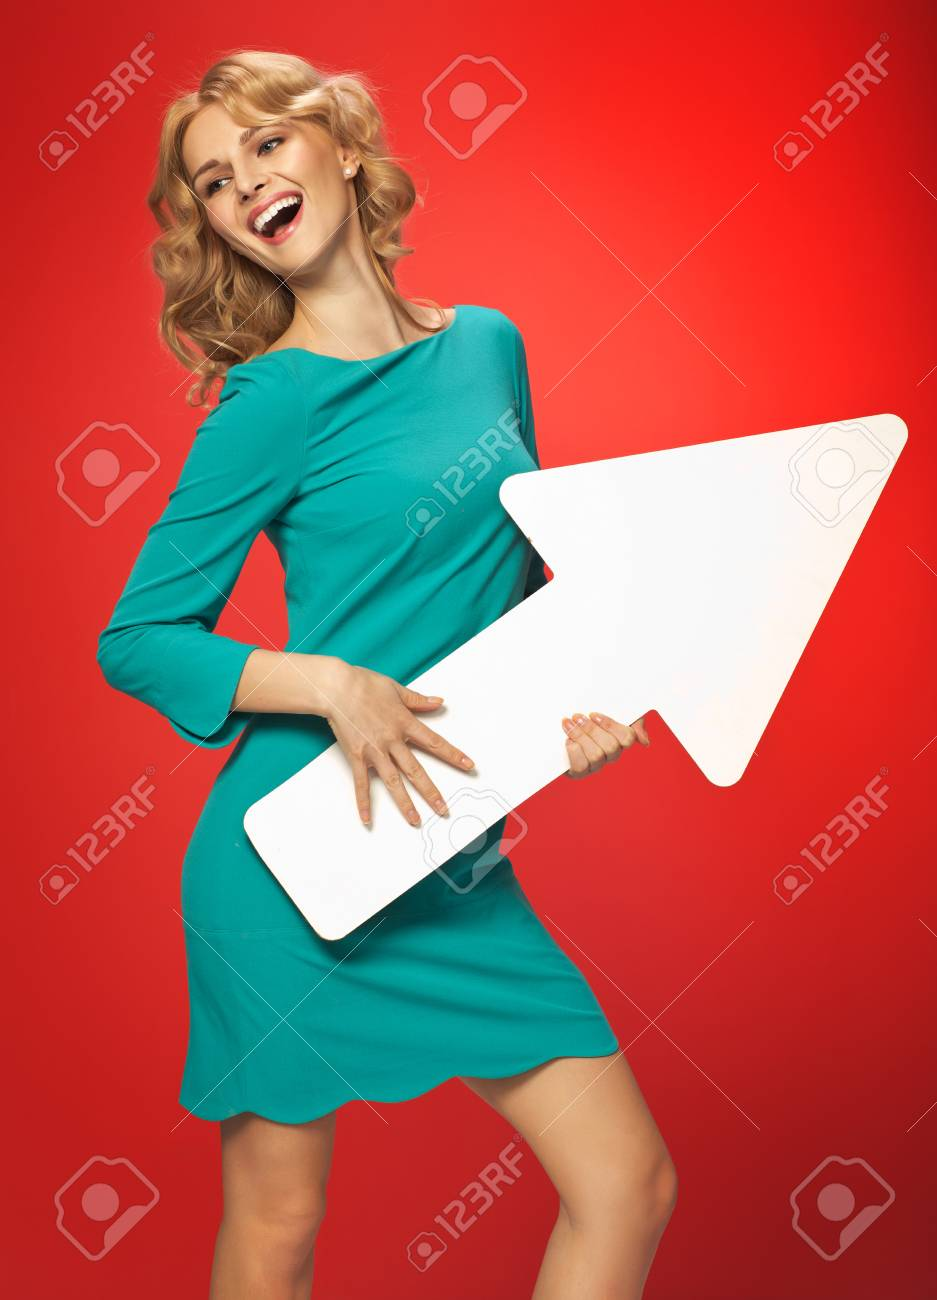 Blond lady with the conceptual white arrow Stock Photo - 30526093